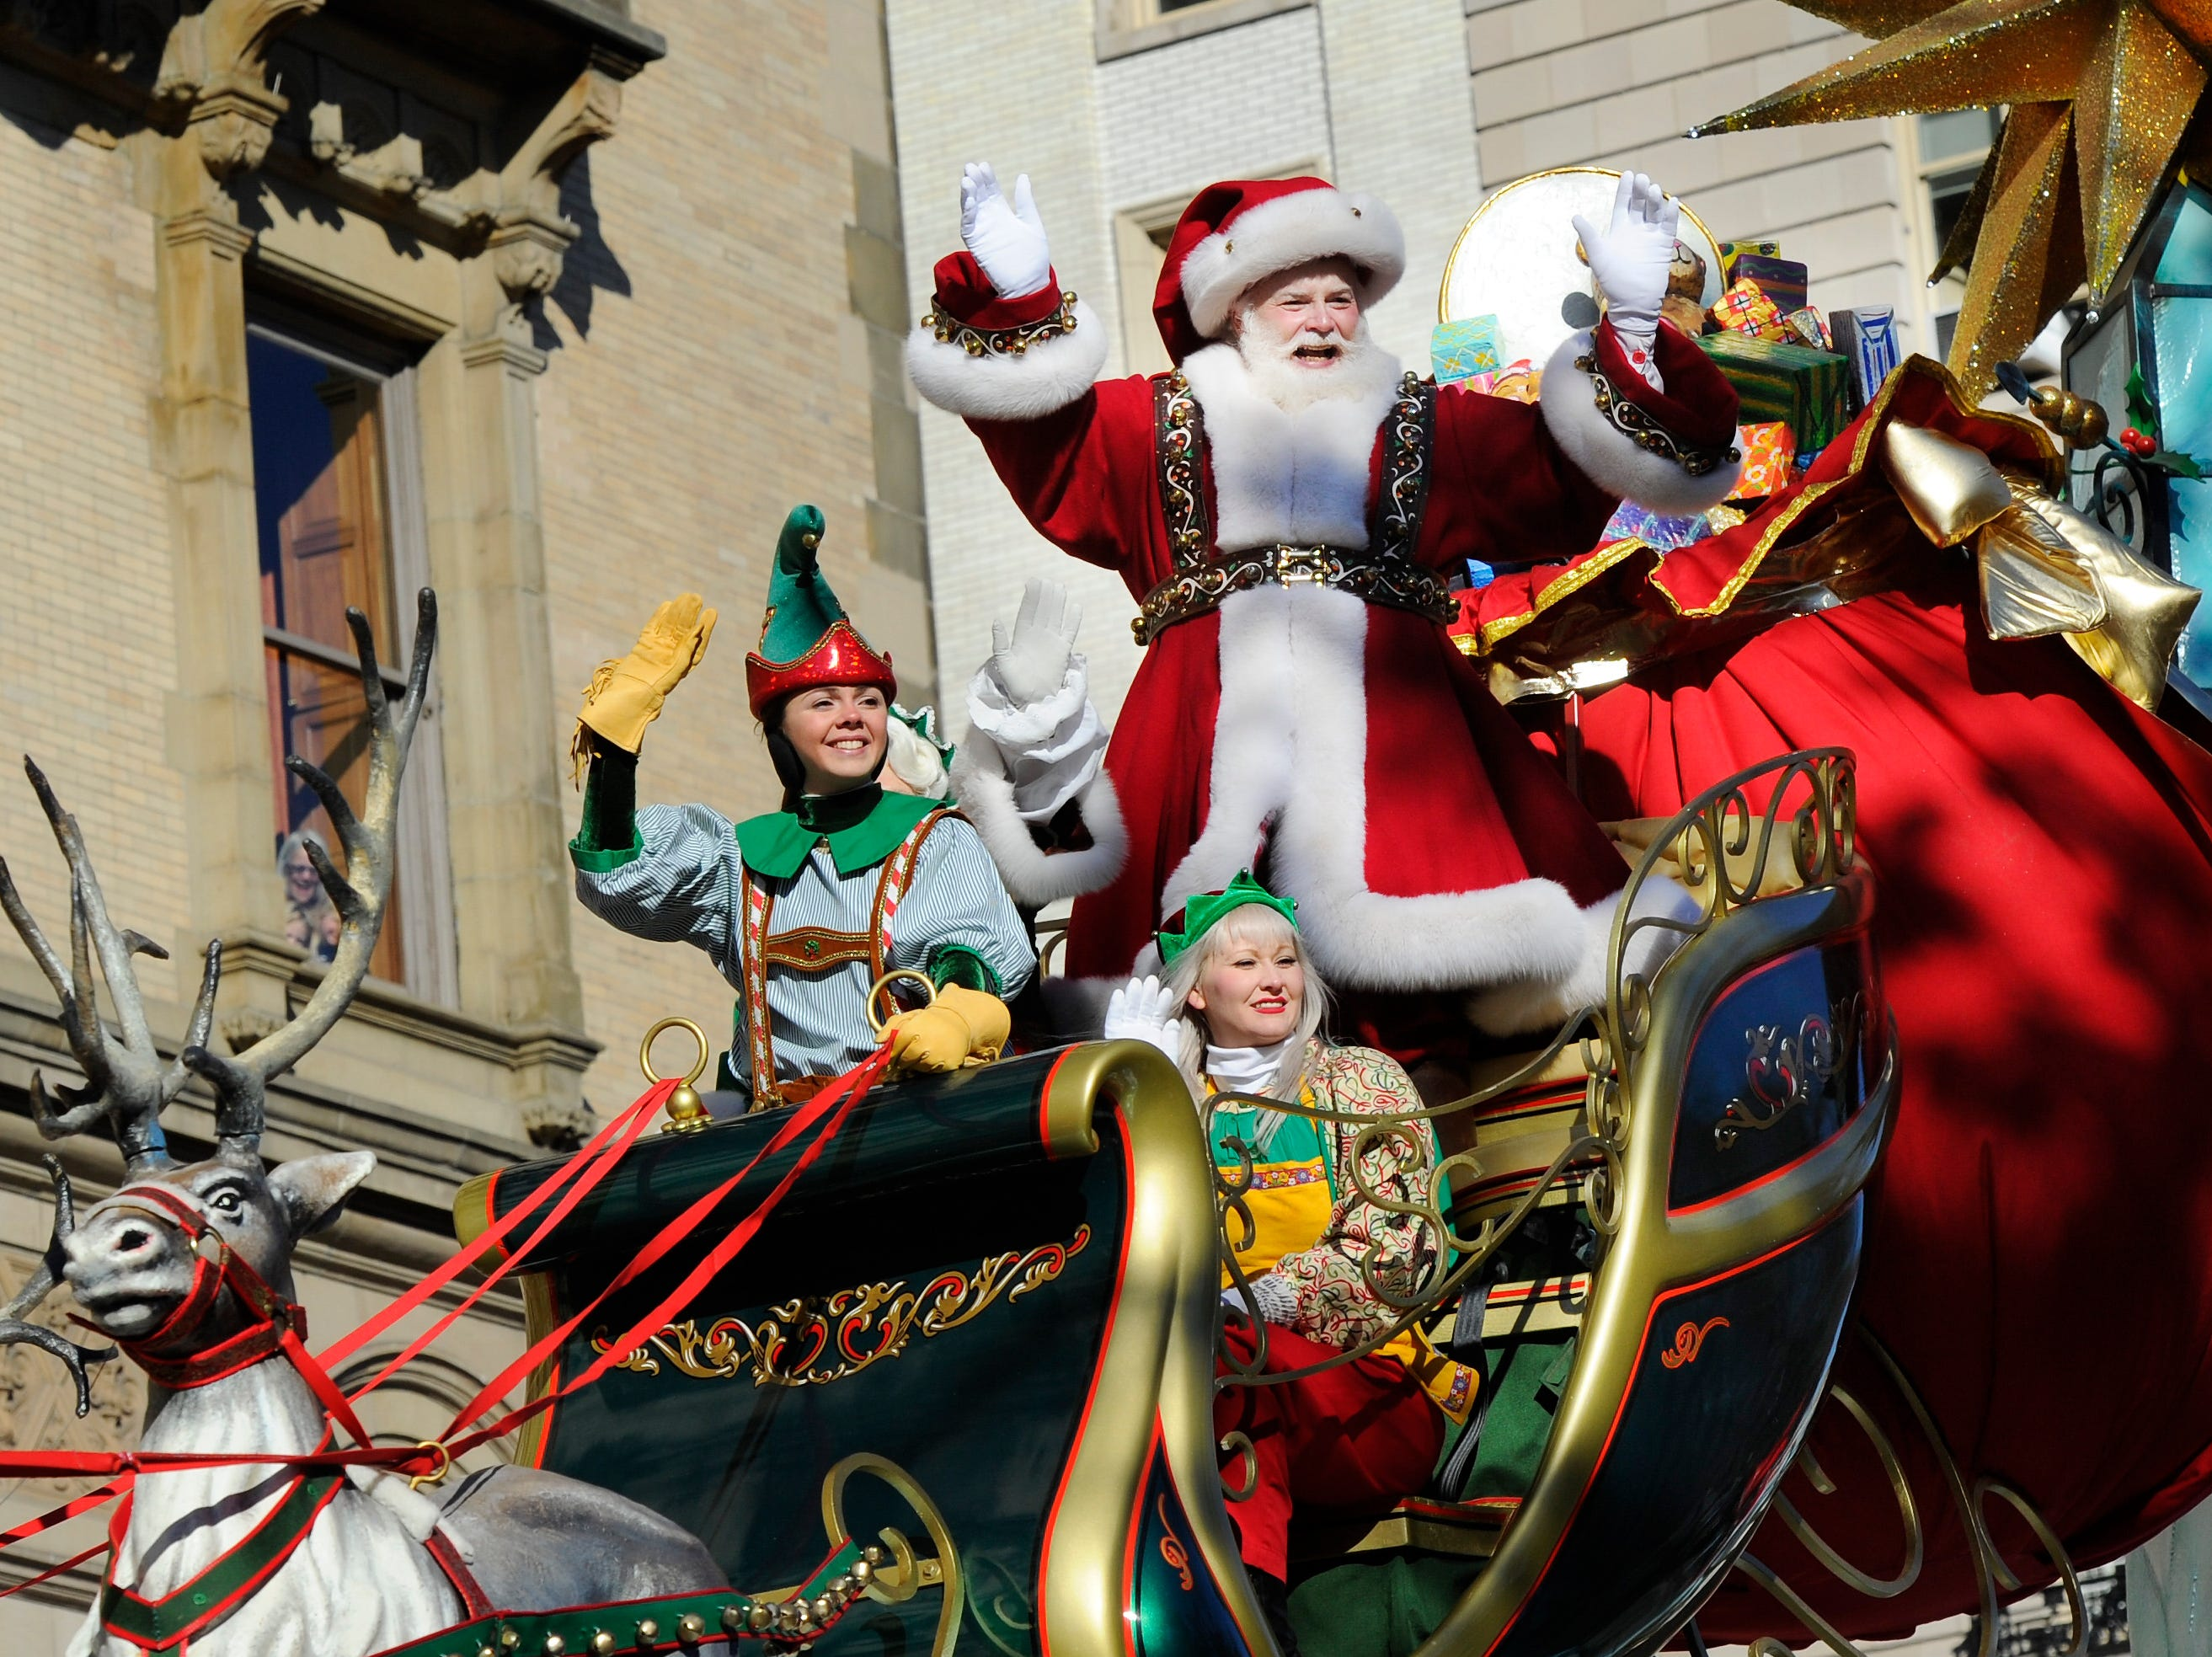 11/28/13 11:56:24 AM -- New York, NY, U.S.A  -- 87th Annual Macy's Thanksgiving Day Parade -- Santa ends the Parade Photo by Robert Deutsch, USA TODAY Staff